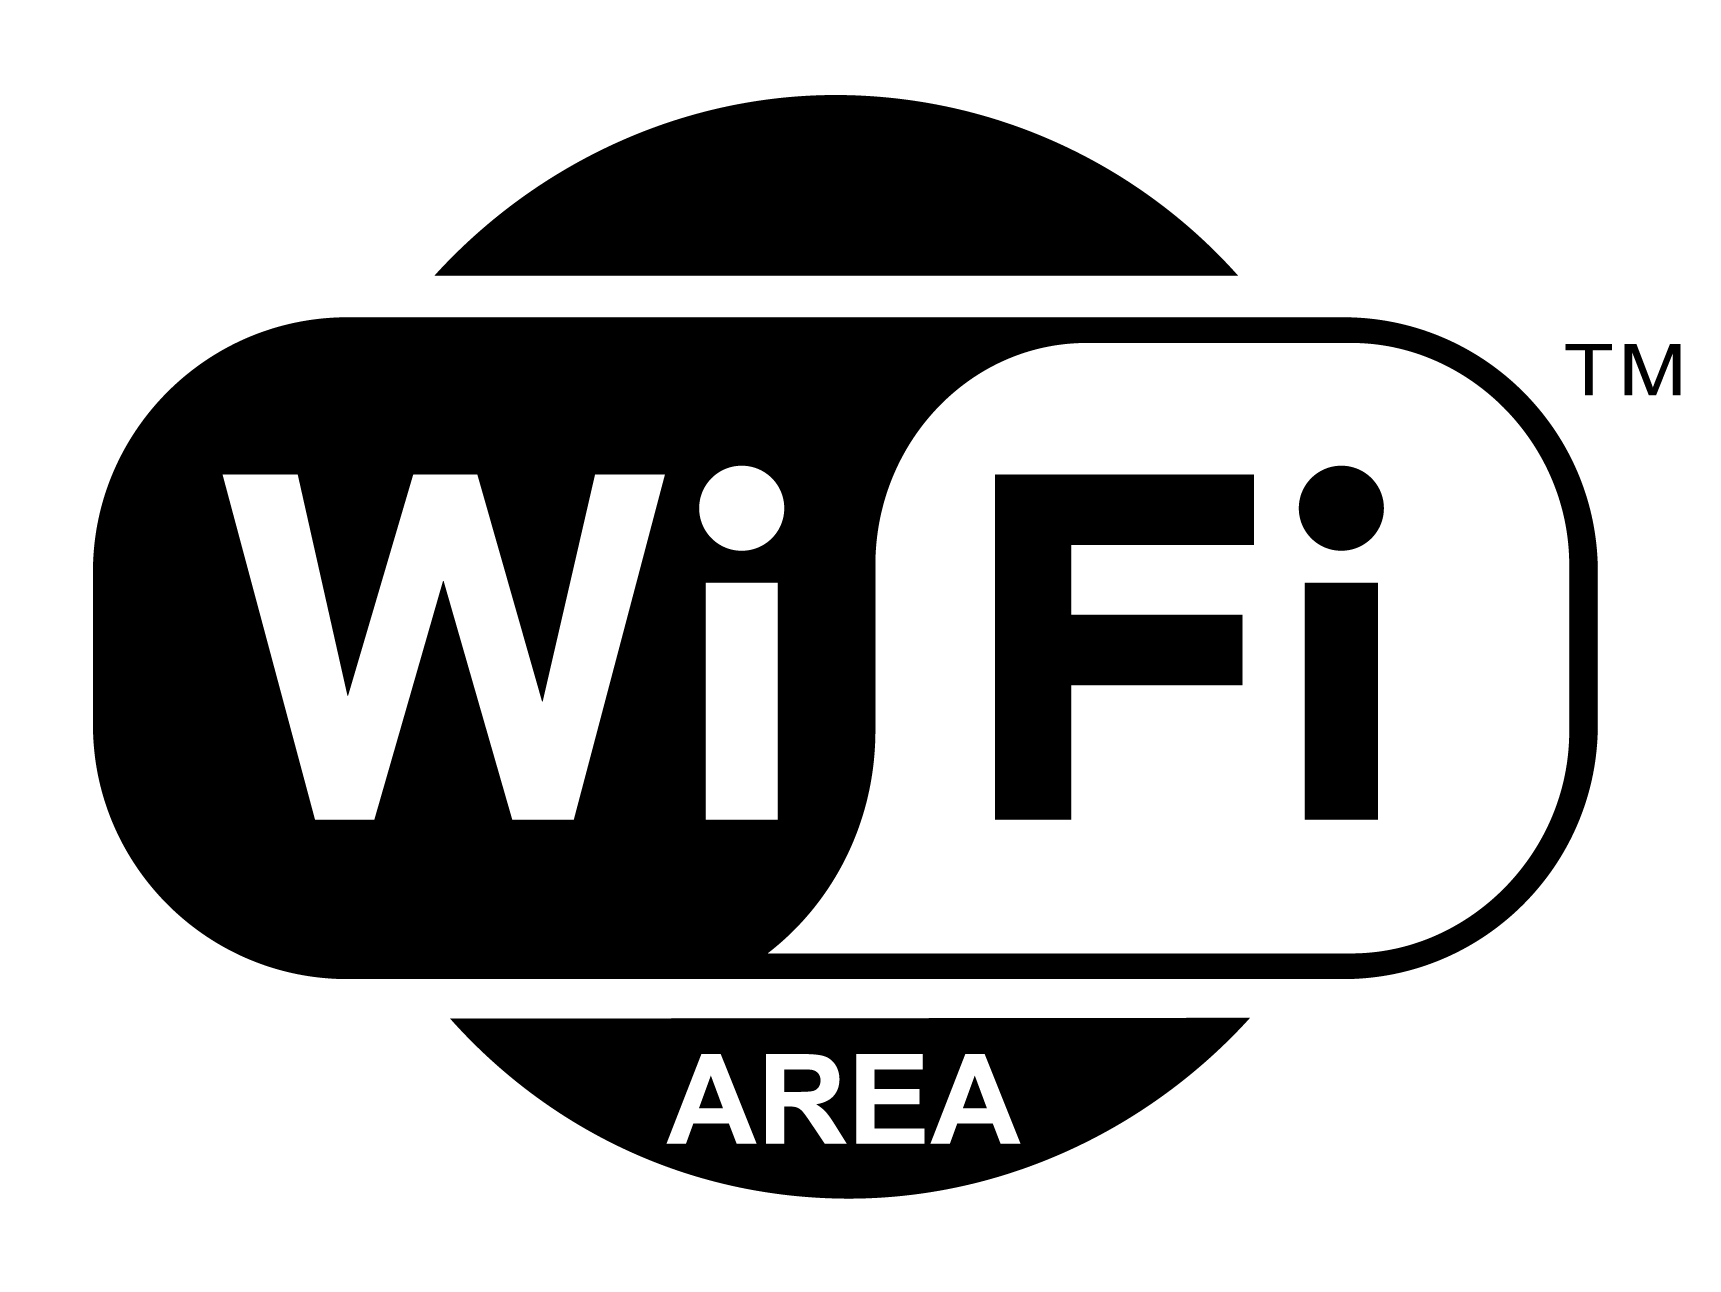 Logo wifi png. Where to find free